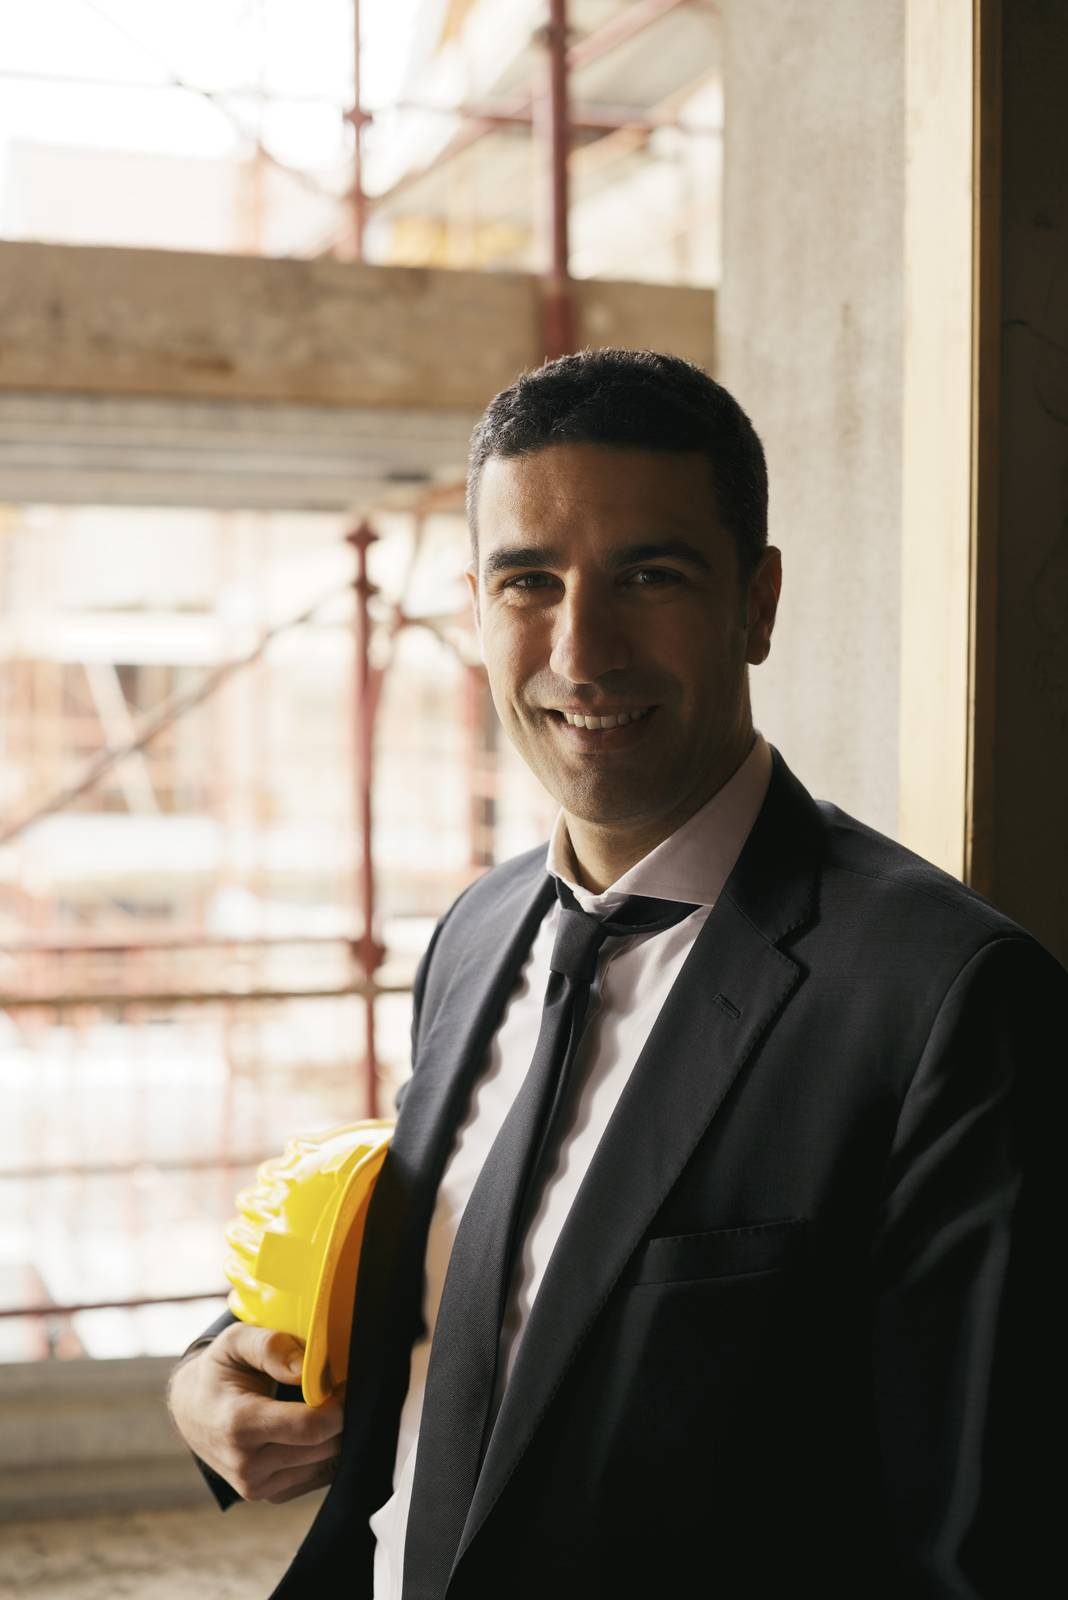 engineer, house, man, site, construction, smiling - D8445608